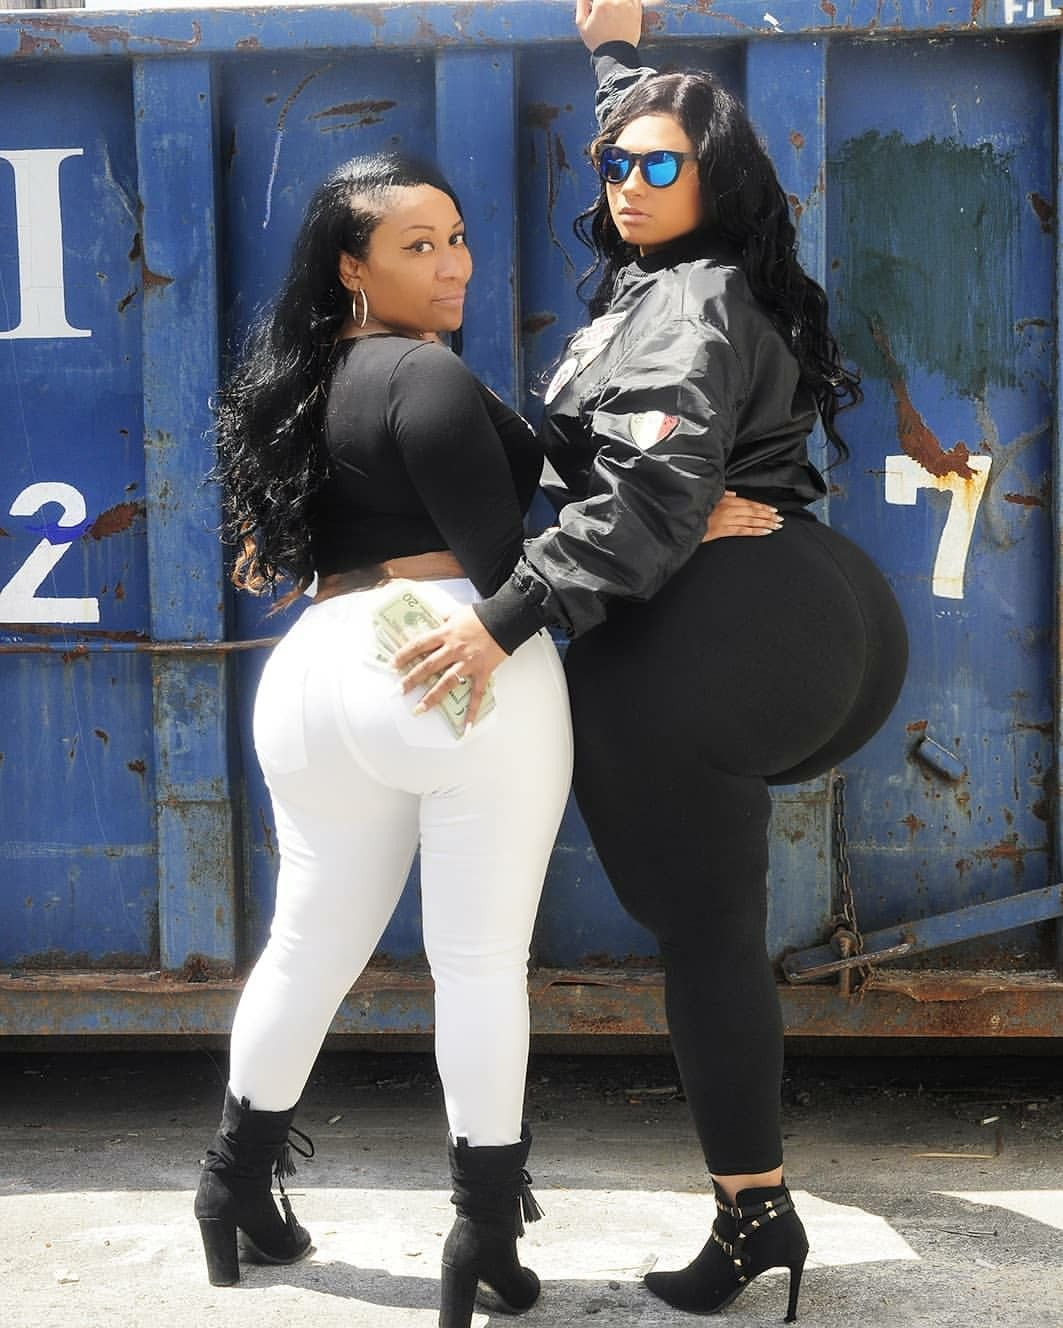 phat booty bitches | gr8 | pinterest | curvy, curves and big